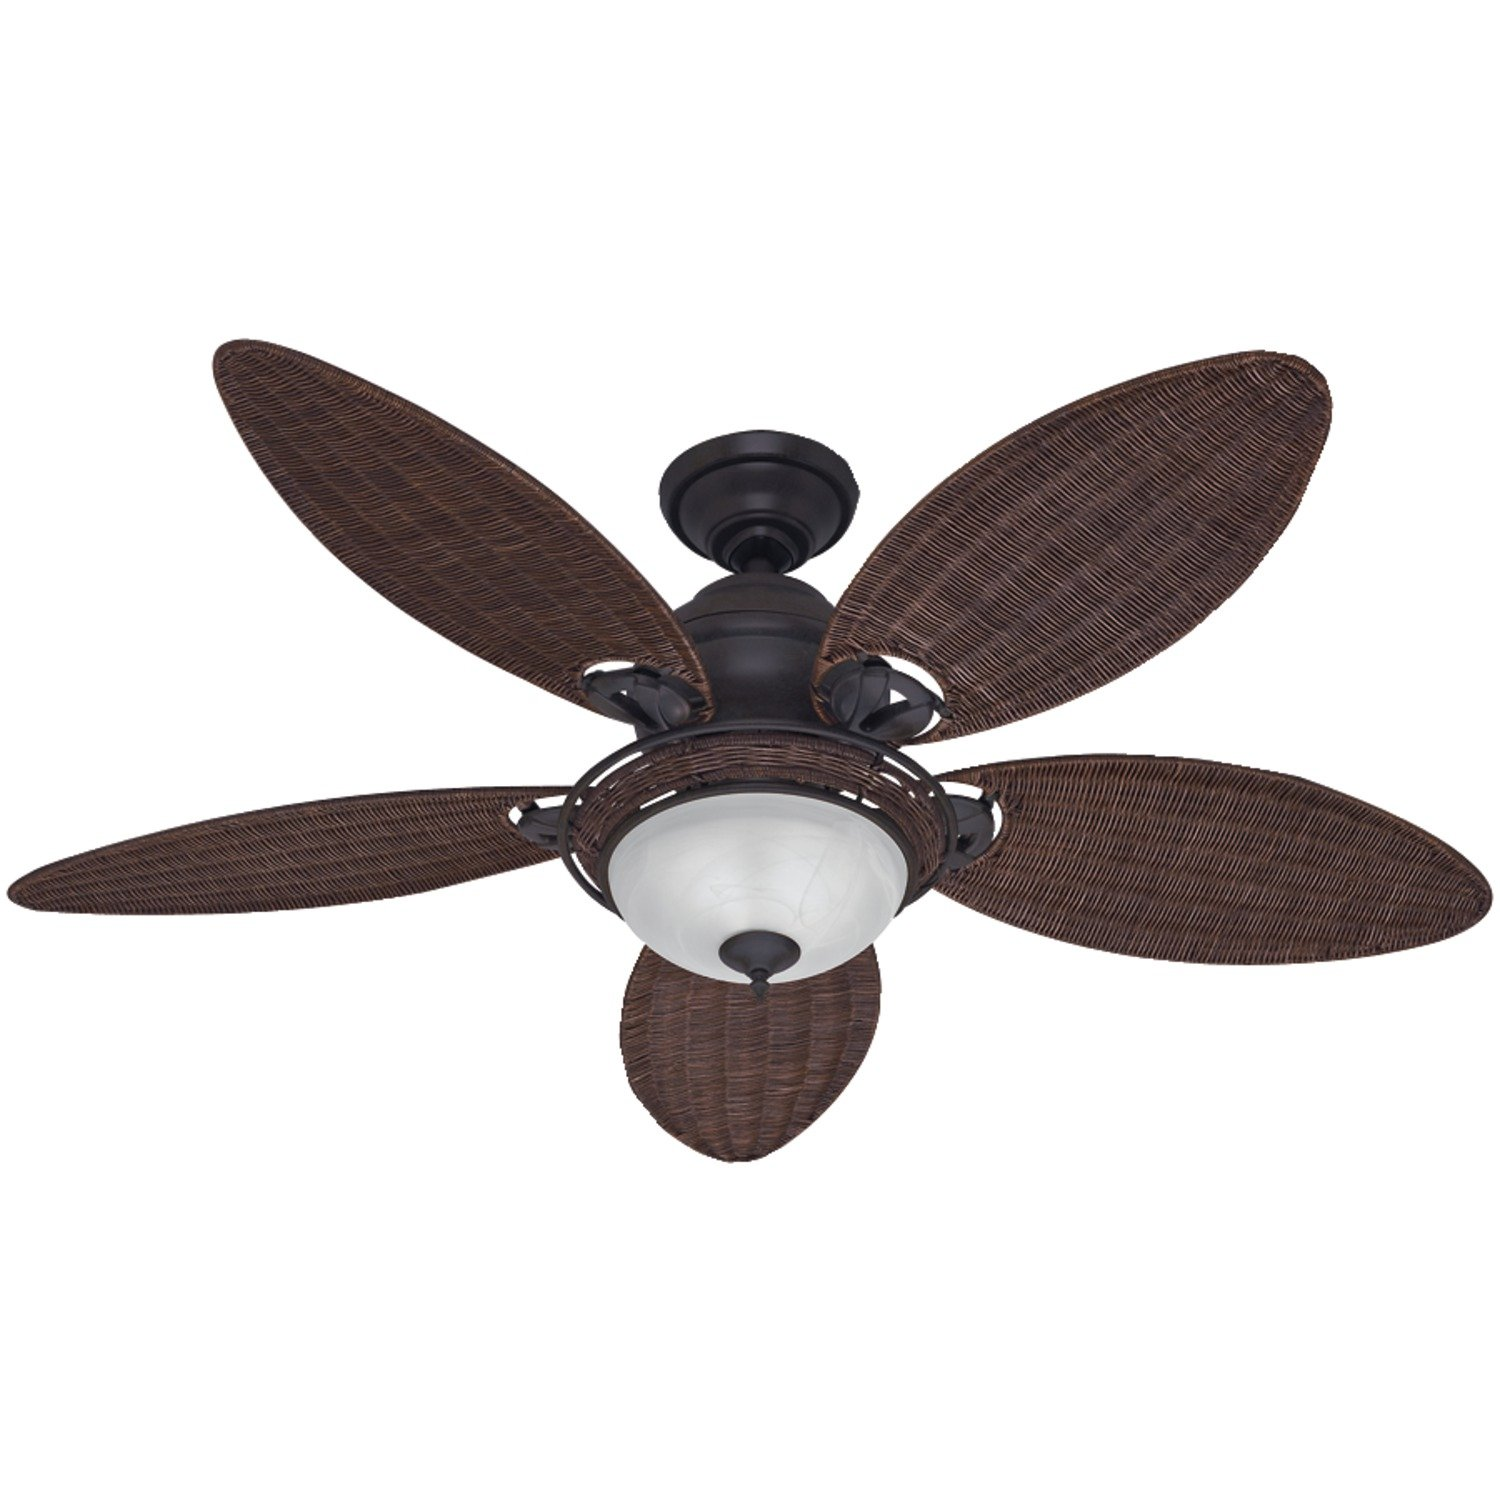 Hunter Fan Company Hunter 54095 Tropical British Colonial 54 Ceiling Fan from Caribbean Breeze collection Dark finish, Weathered Bronze